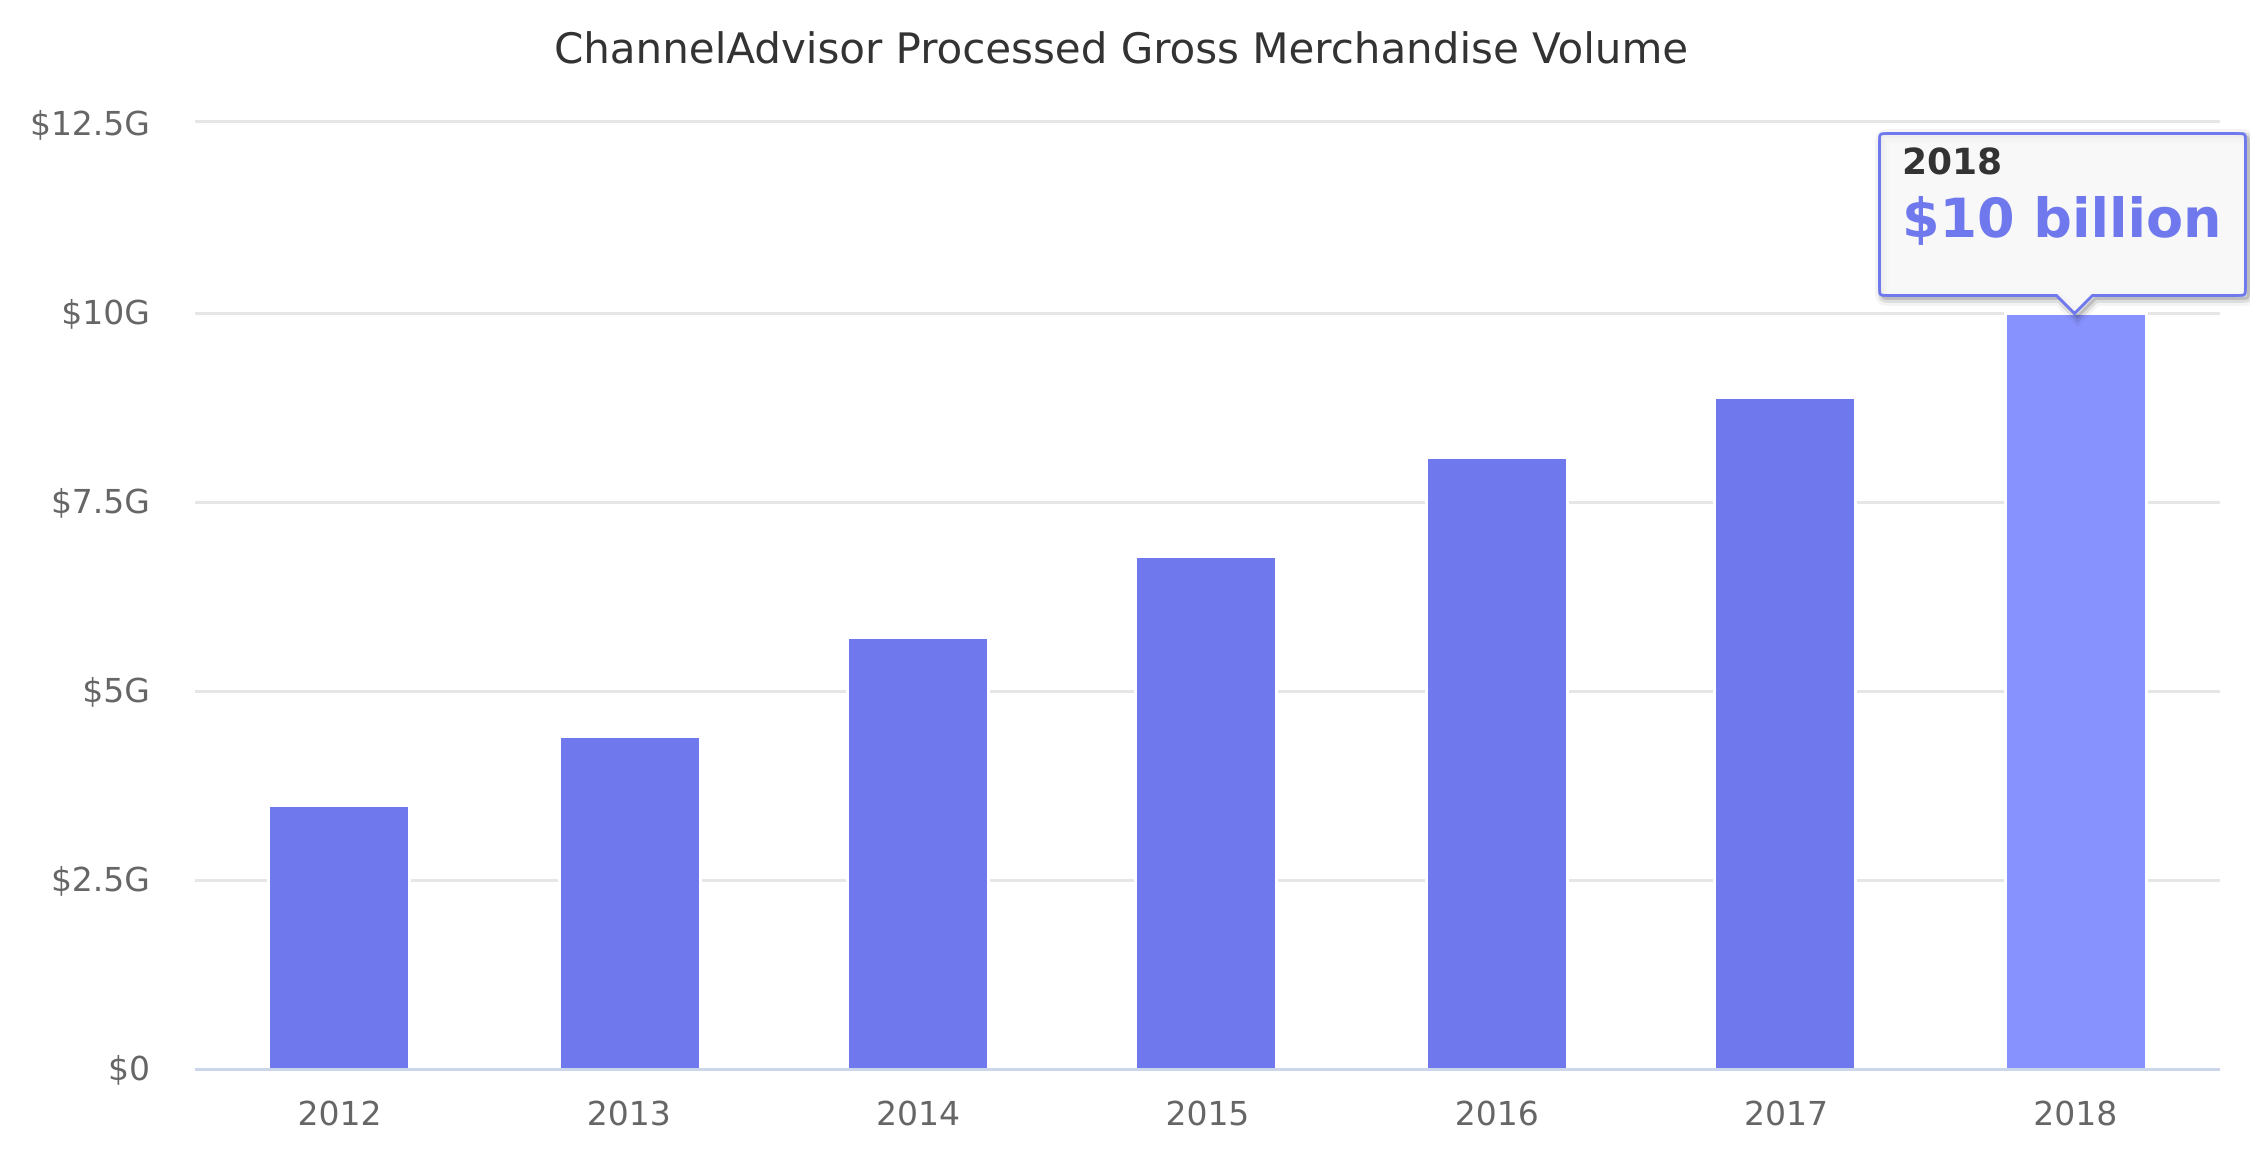 ChannelAdvisor Processed Gross Merchandise Volume 2012-2018